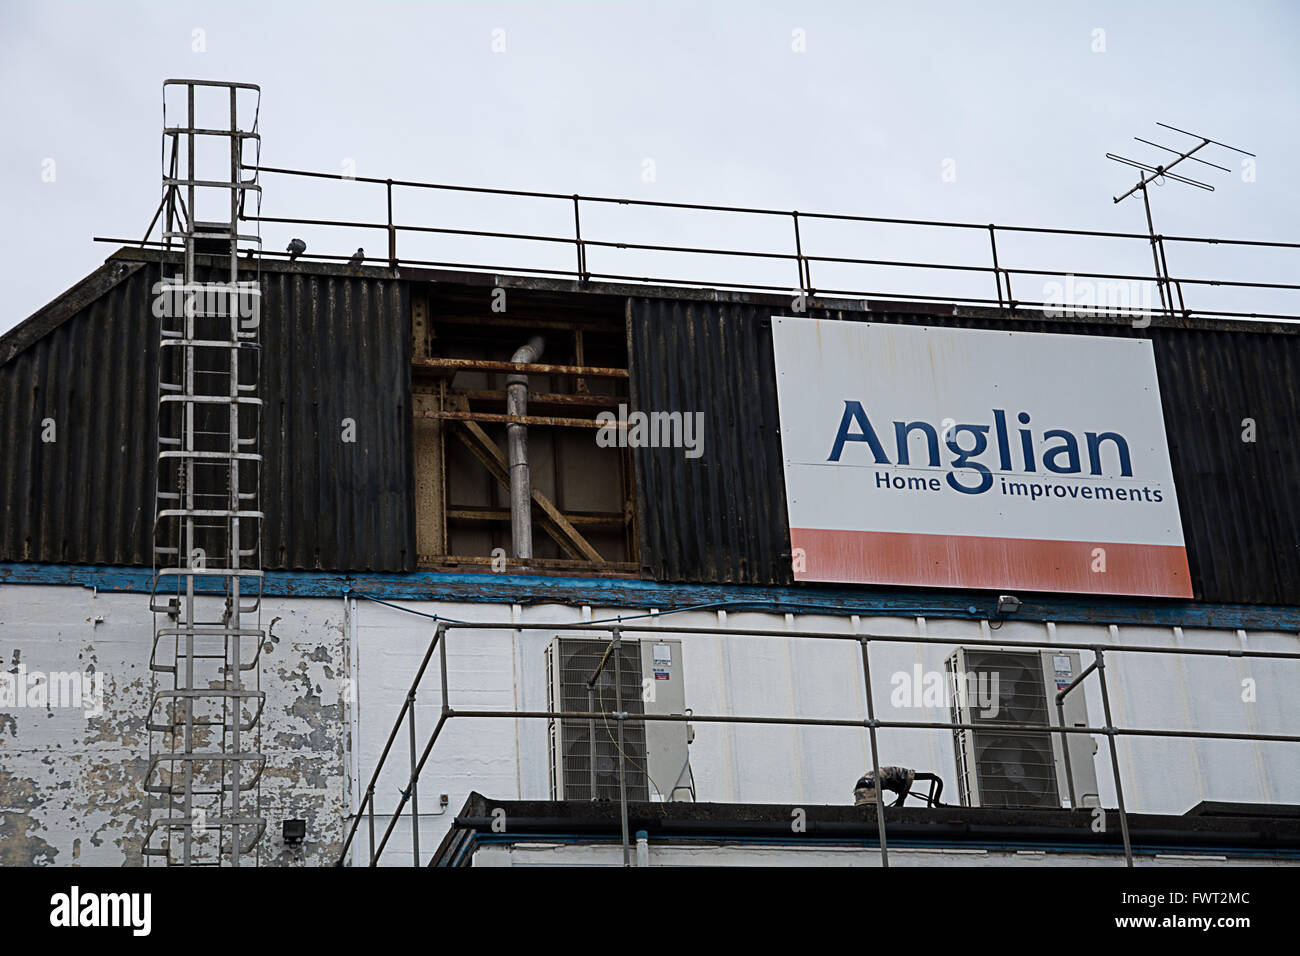 Anglian Home Improvements High Resolution Stock Photography And Images Alamy